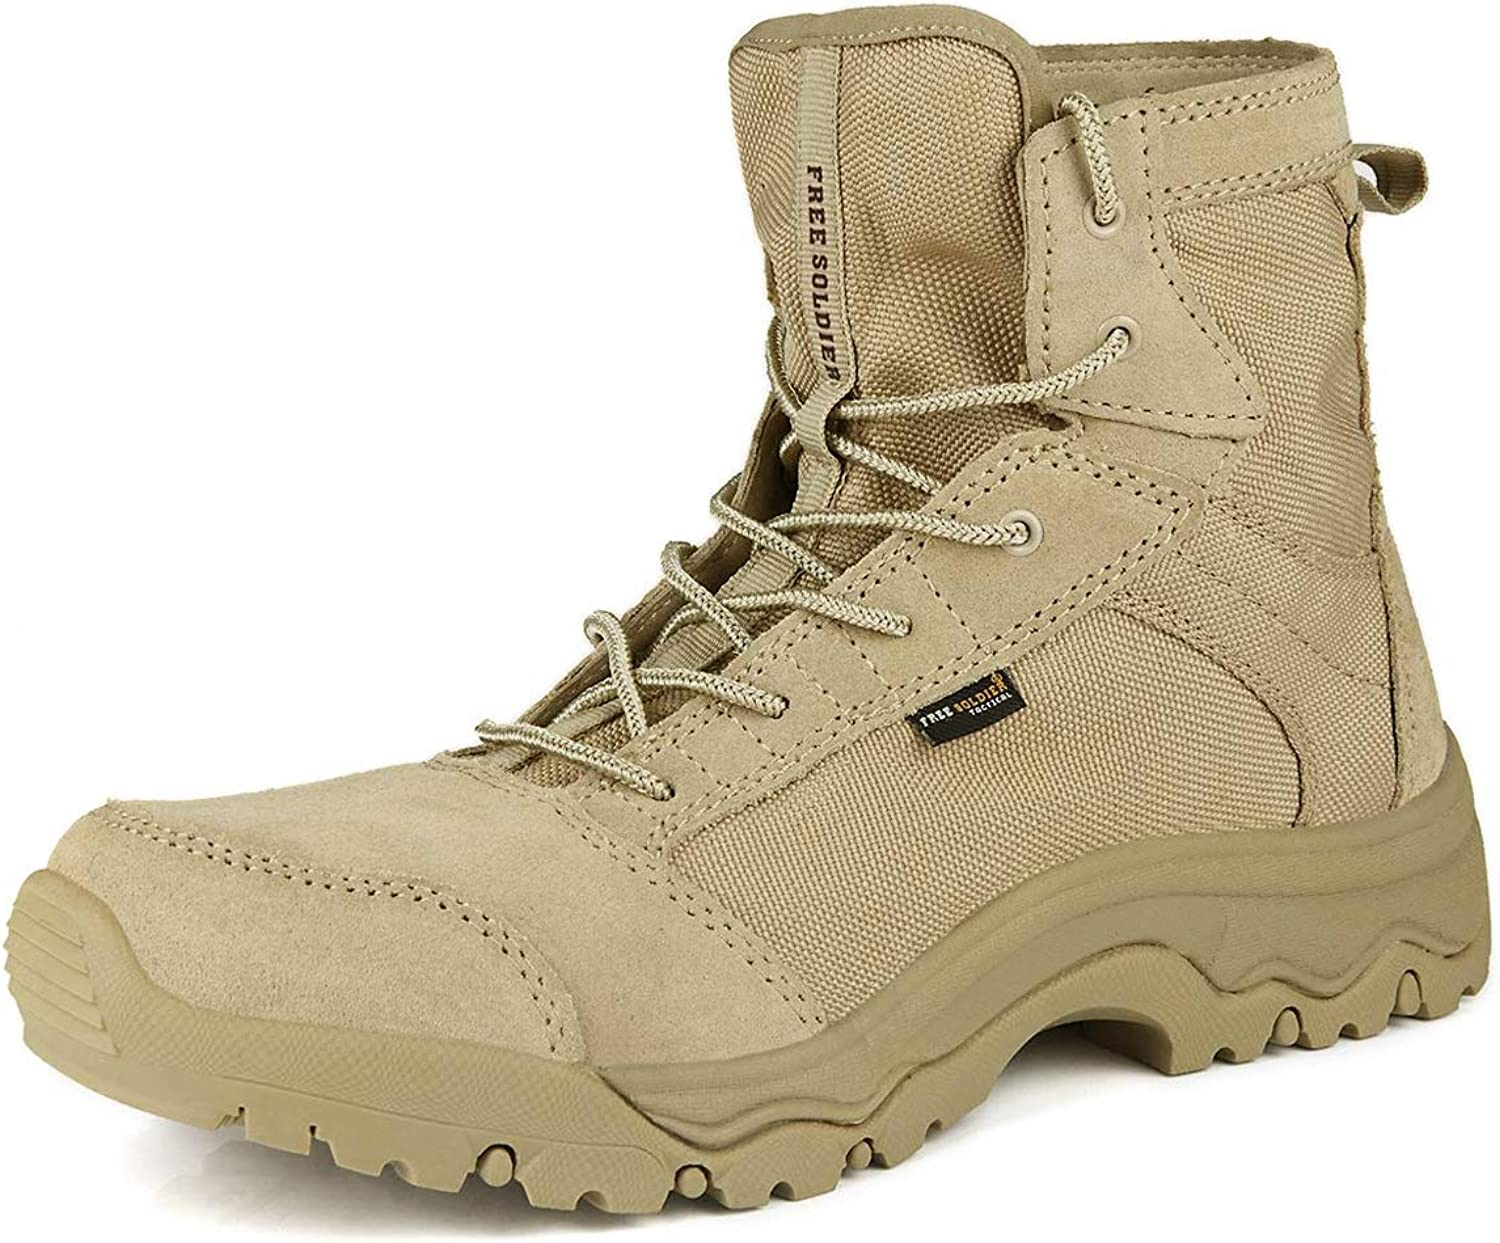 FREE SOLDIER Men's Work Boots Lightweight Army Tactical Boots for Hiking - Desert Tan Boots